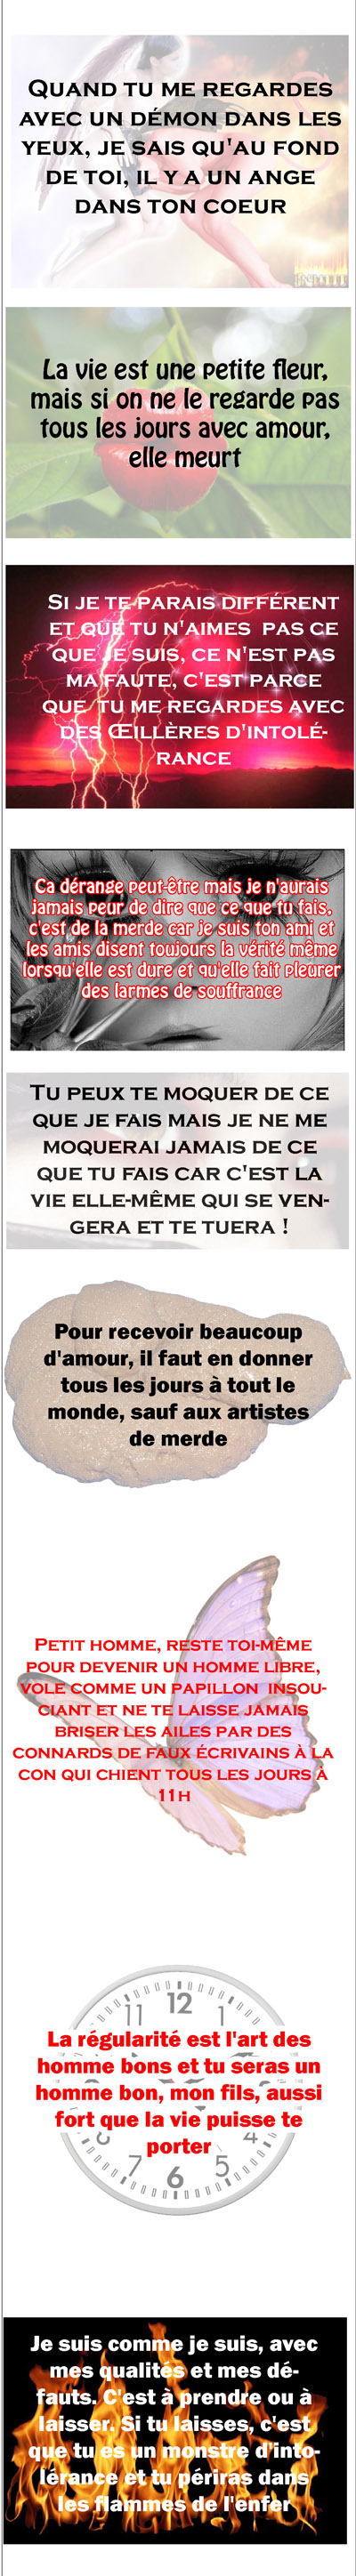 proverbes-facebook